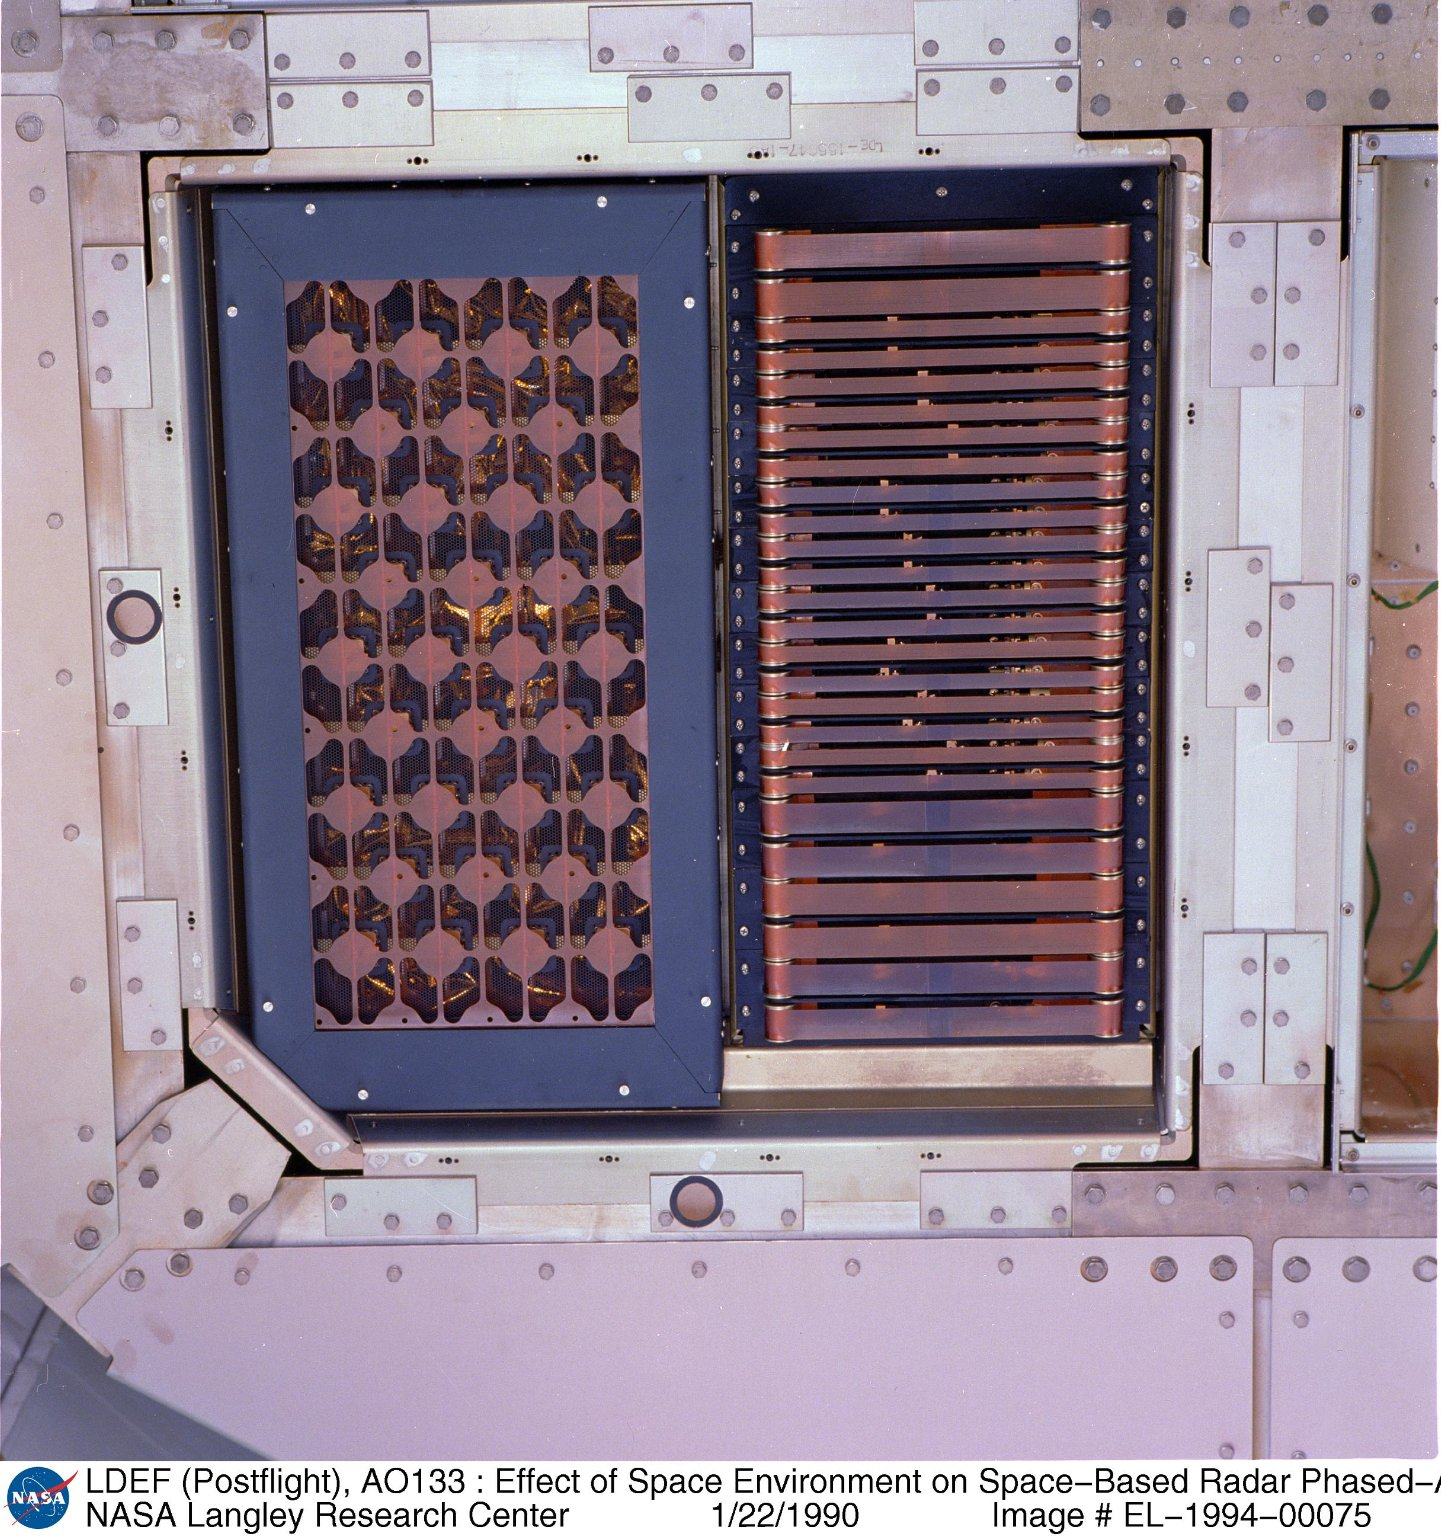 LDEF (Postflight), AO133 : Effect of Space Environment on Space-Based Radar Phased-Array Antenna, Tr